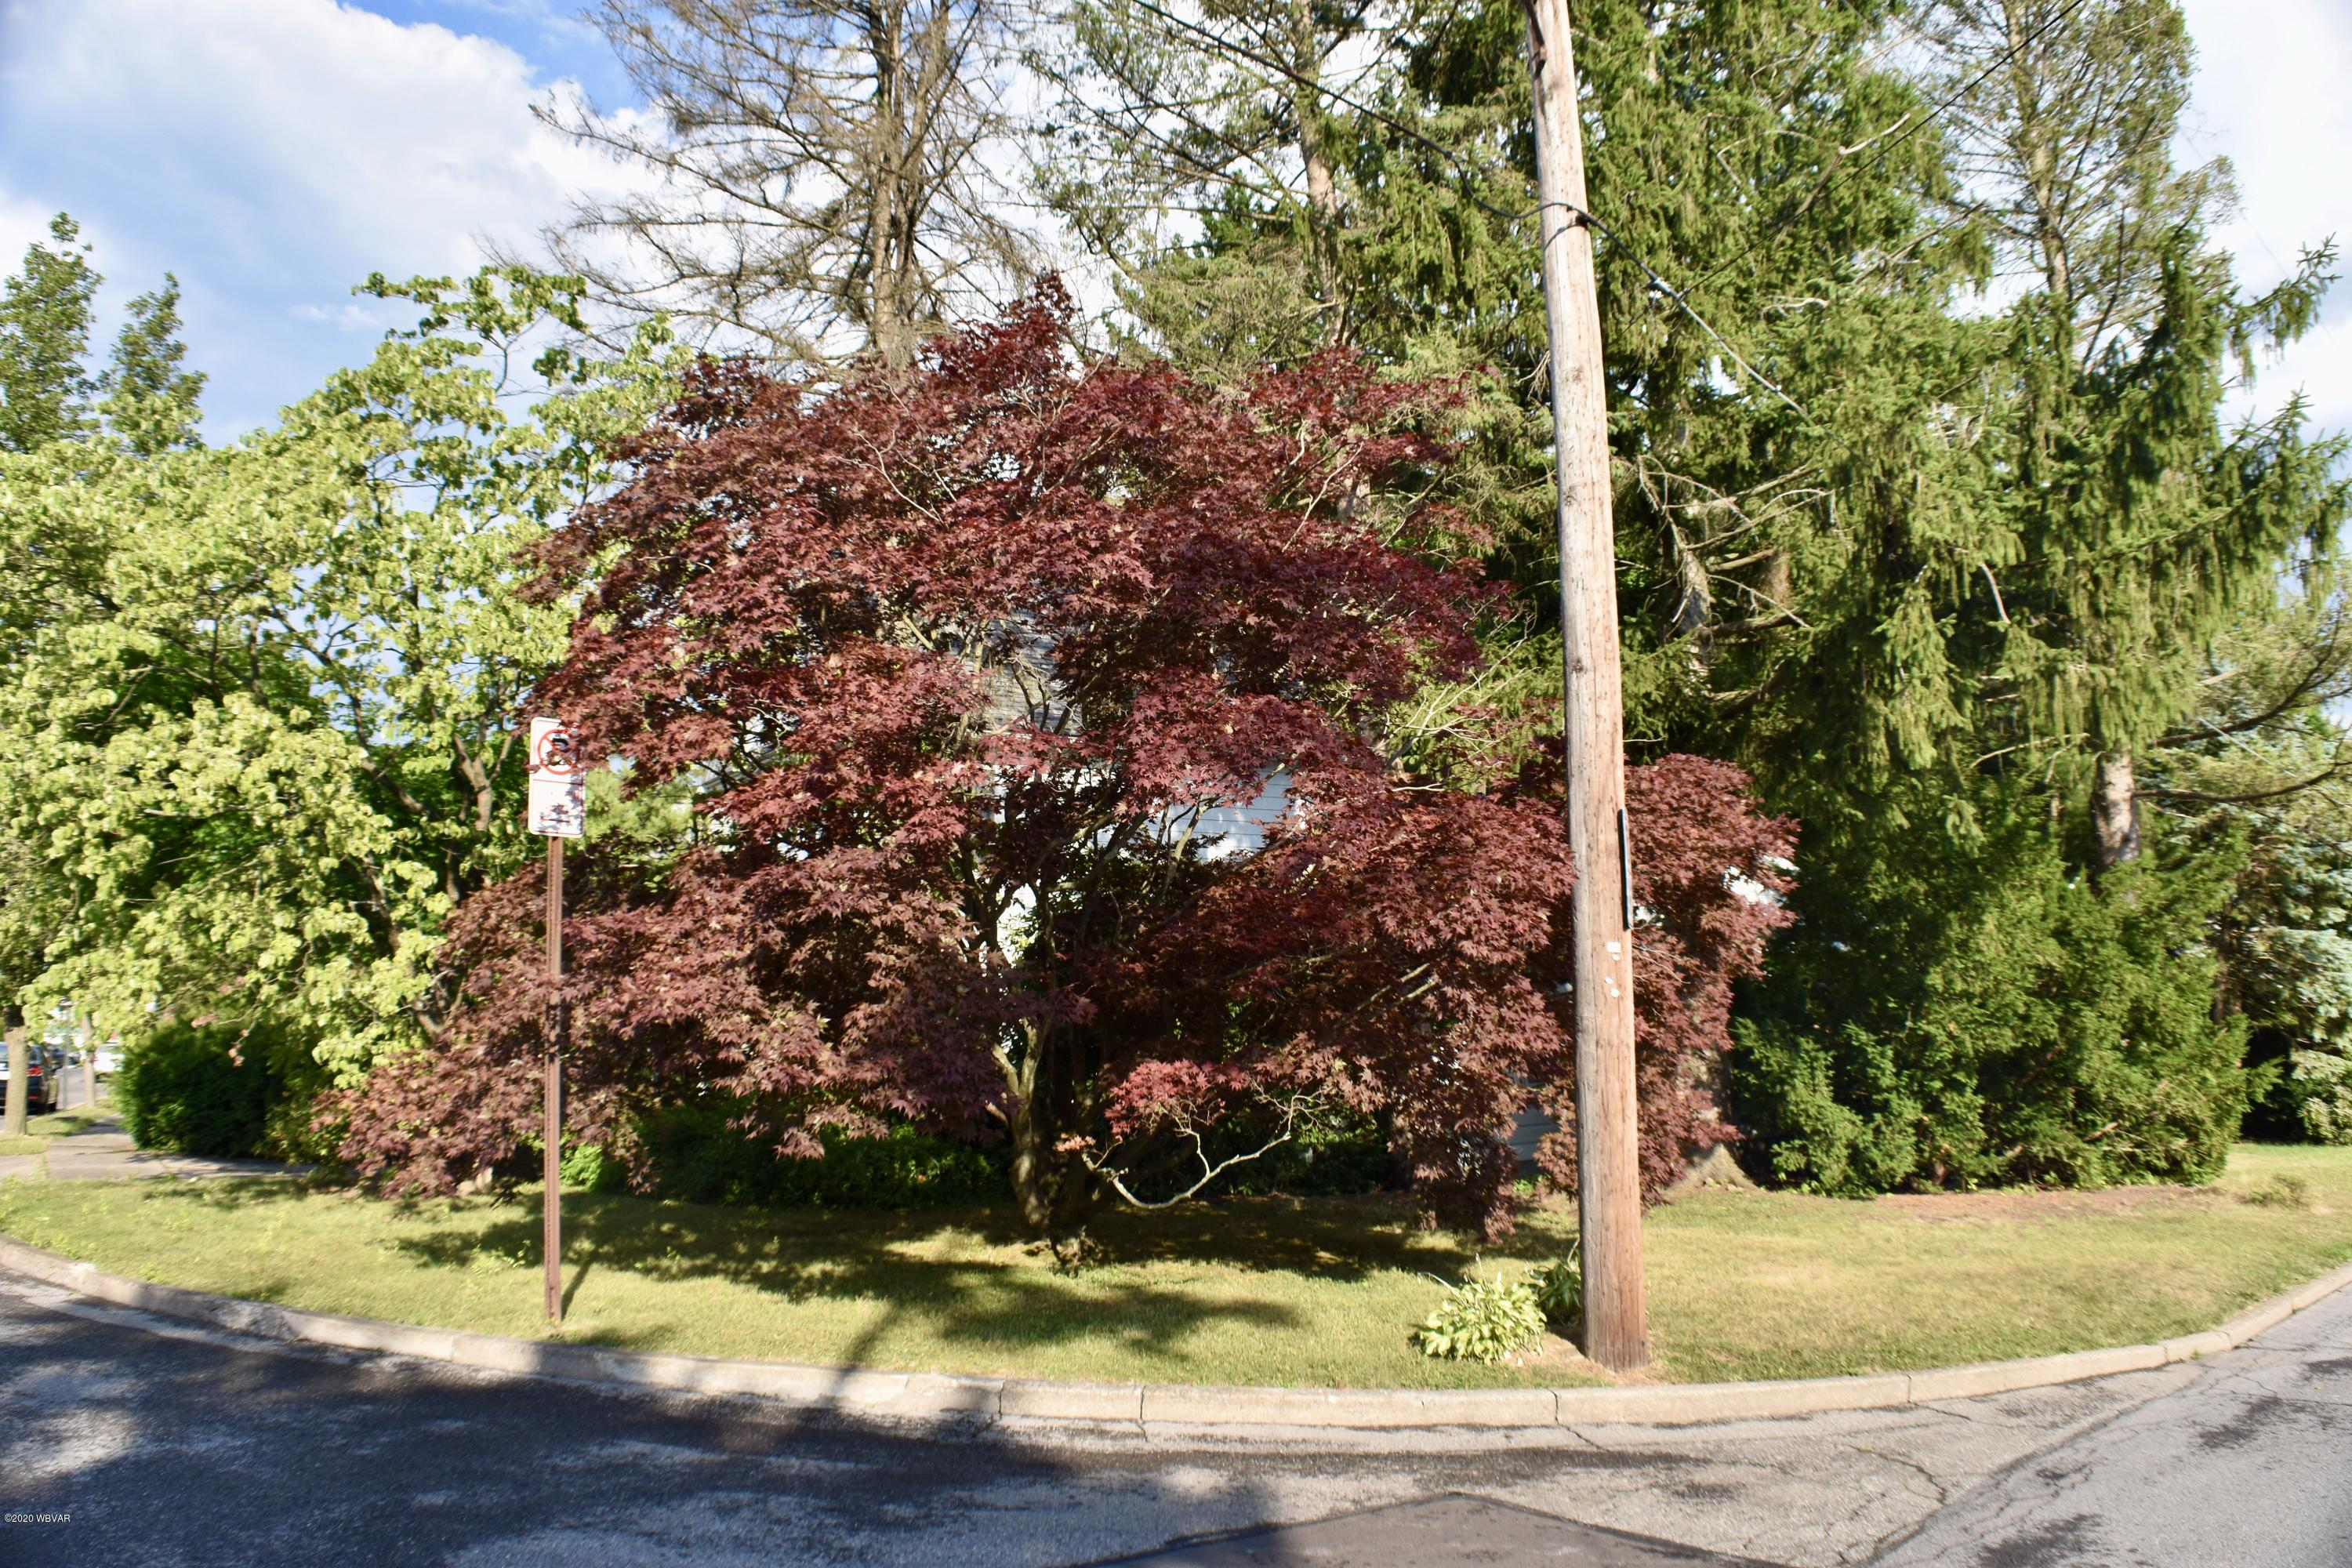 526 MAPLE STREET, Lock Haven, PA 17745, 3 Bedrooms Bedrooms, ,1 BathroomBathrooms,Residential,For sale,MAPLE,WB-90773